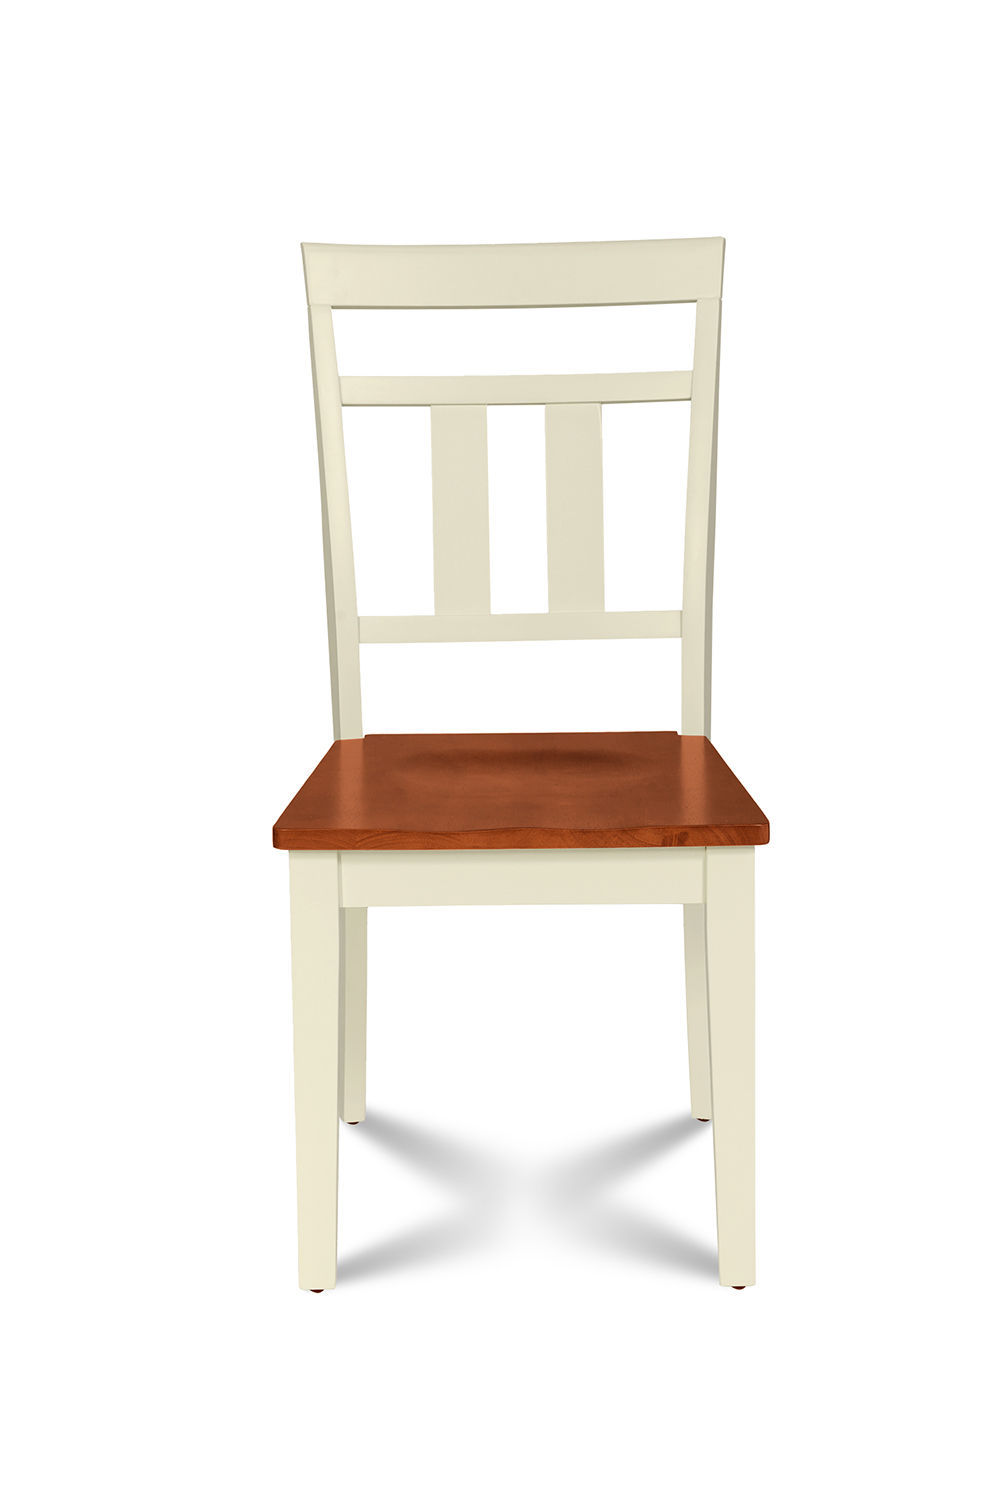 SET OF 6 KITCHEN DINING SIDE CHAIRS w/ WOODEN SEAT IN BUTTERMILK CHERRY